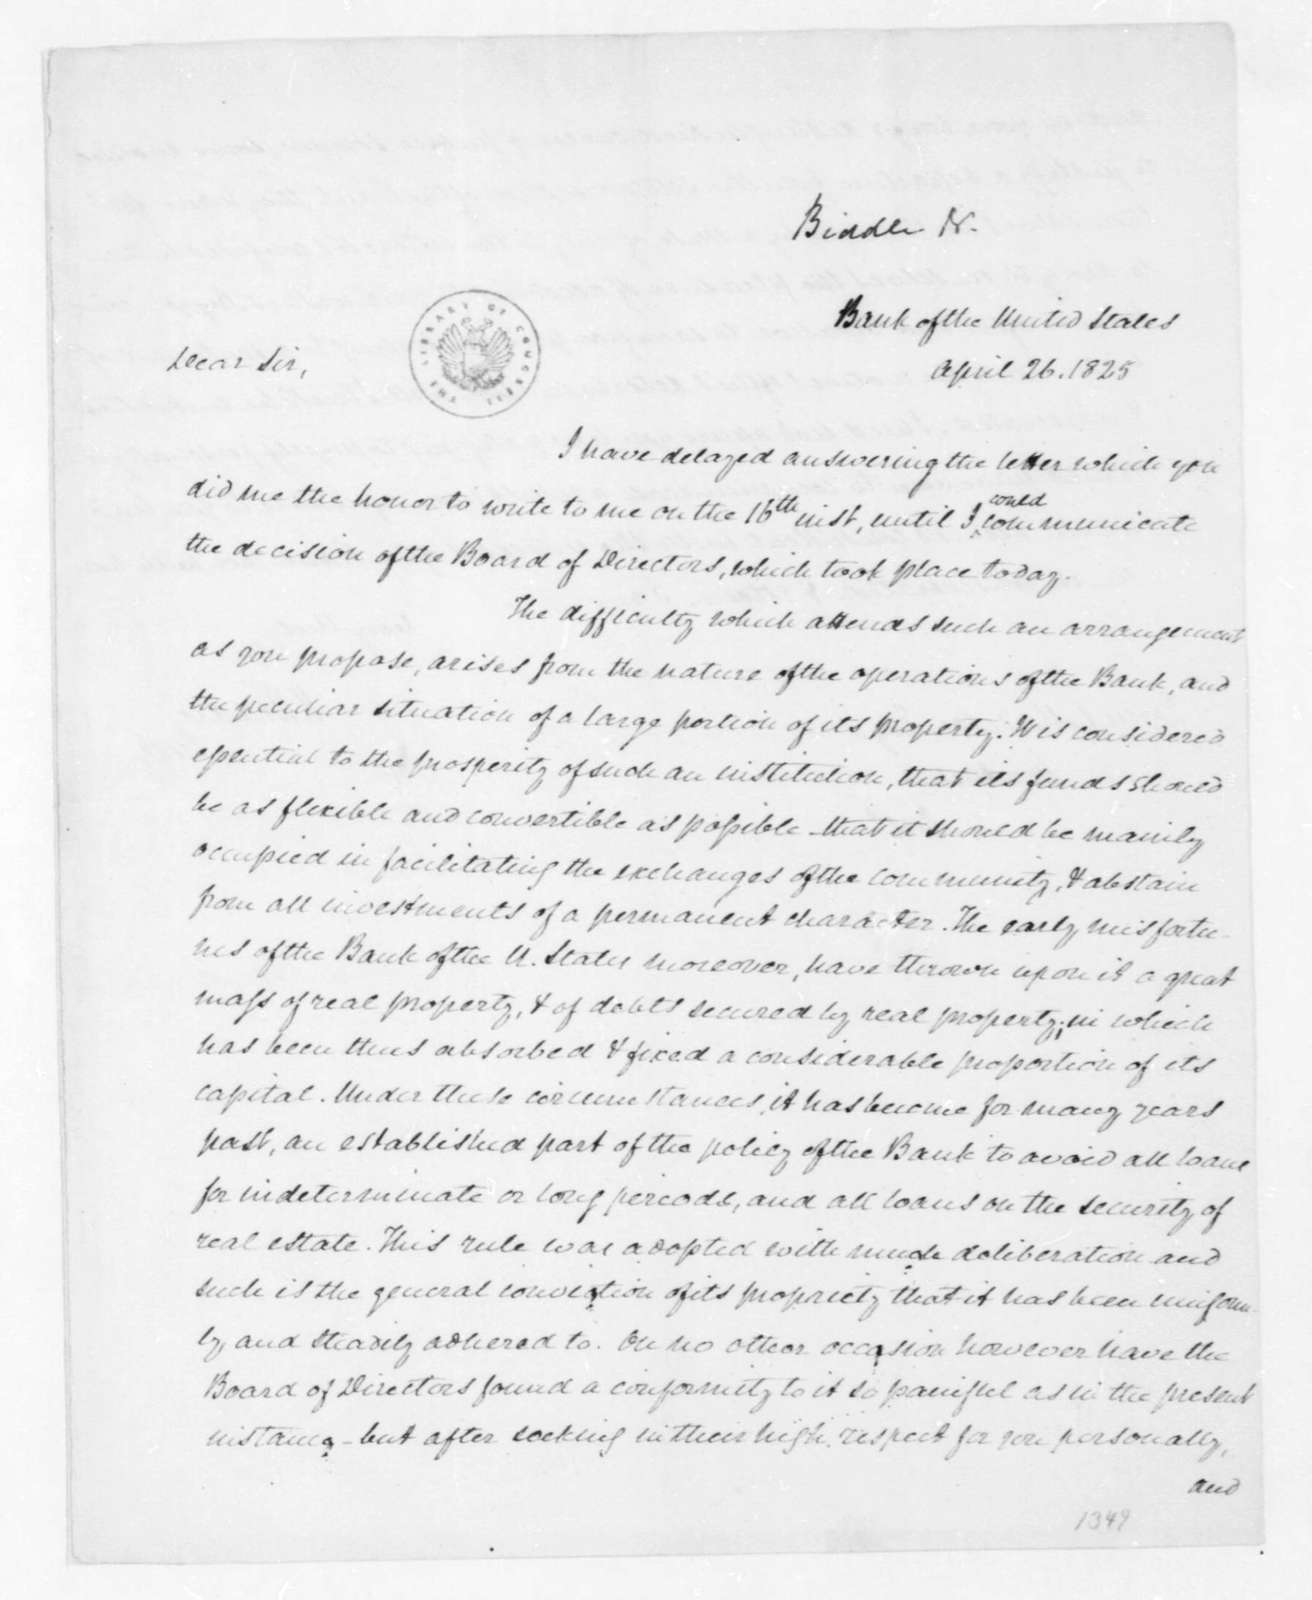 Nicholas Biddle to James Madison, April 26, 1825.